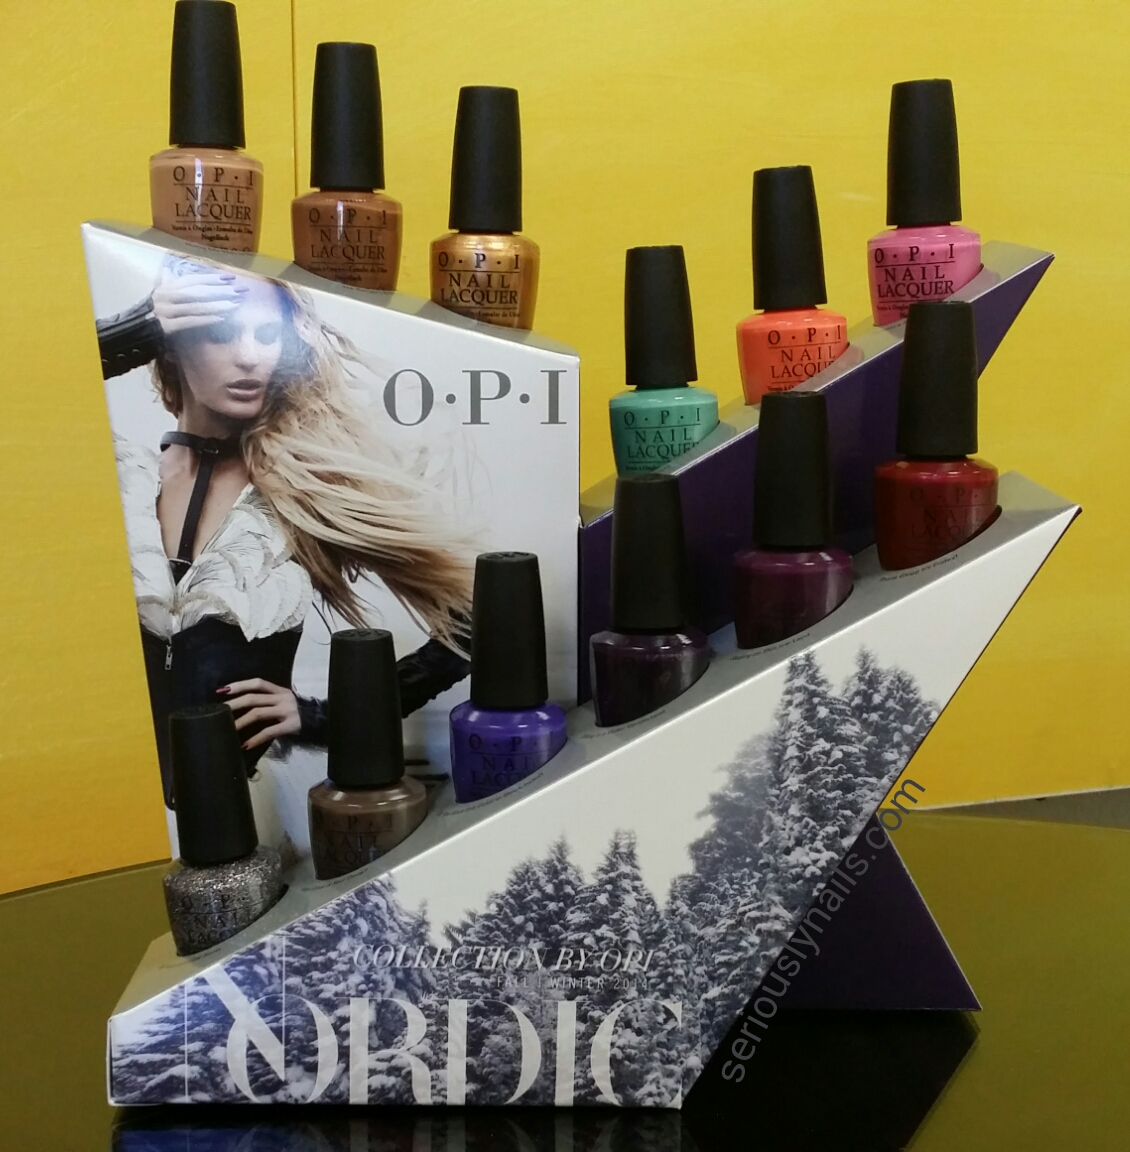 Nordic Collection by OPI release date August 6, 2014